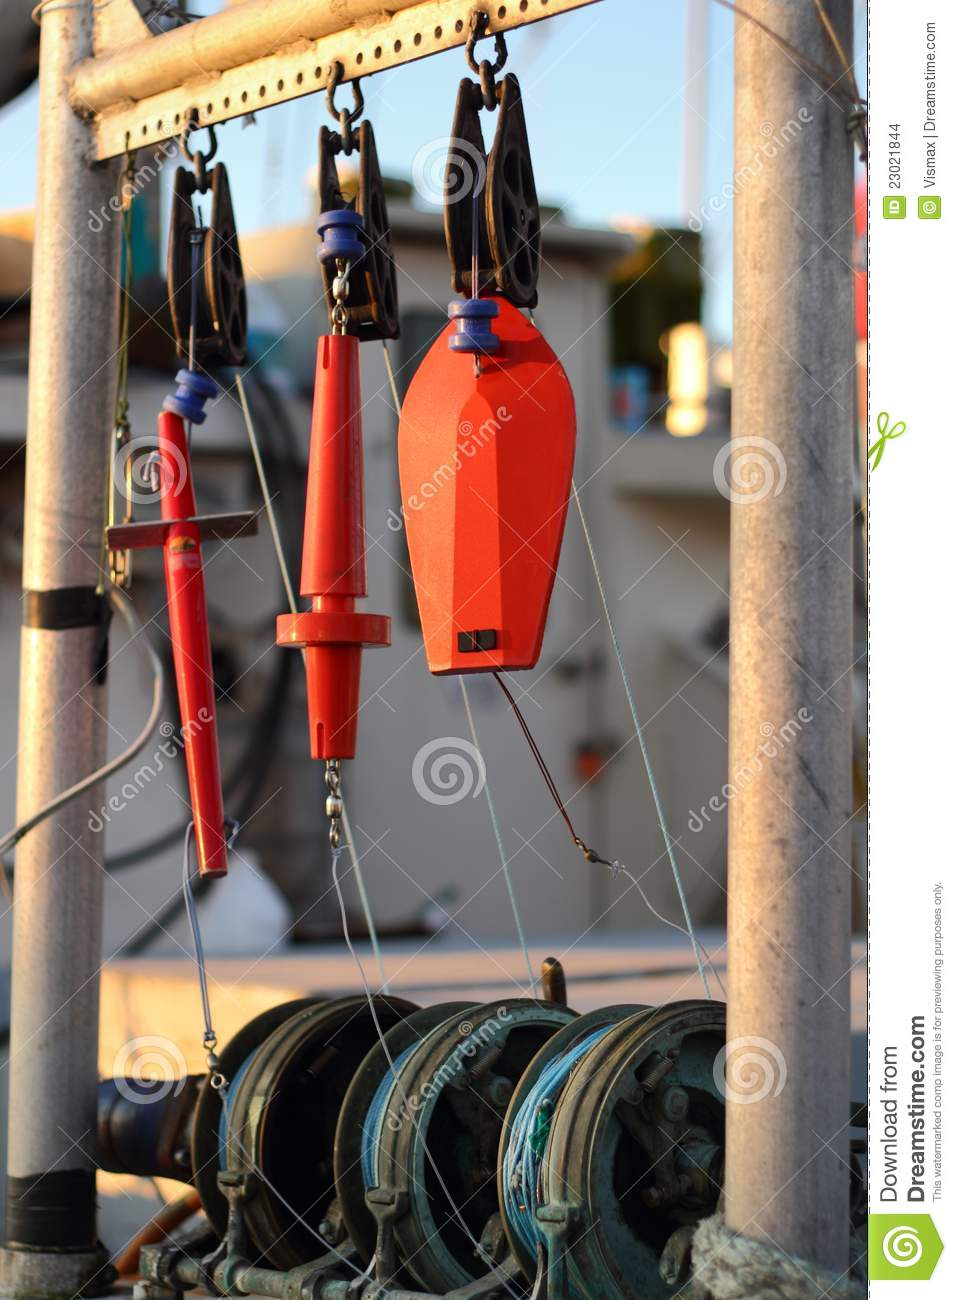 Commercial fishing equipment stock images image 23021844 for Commercial fishing supplies